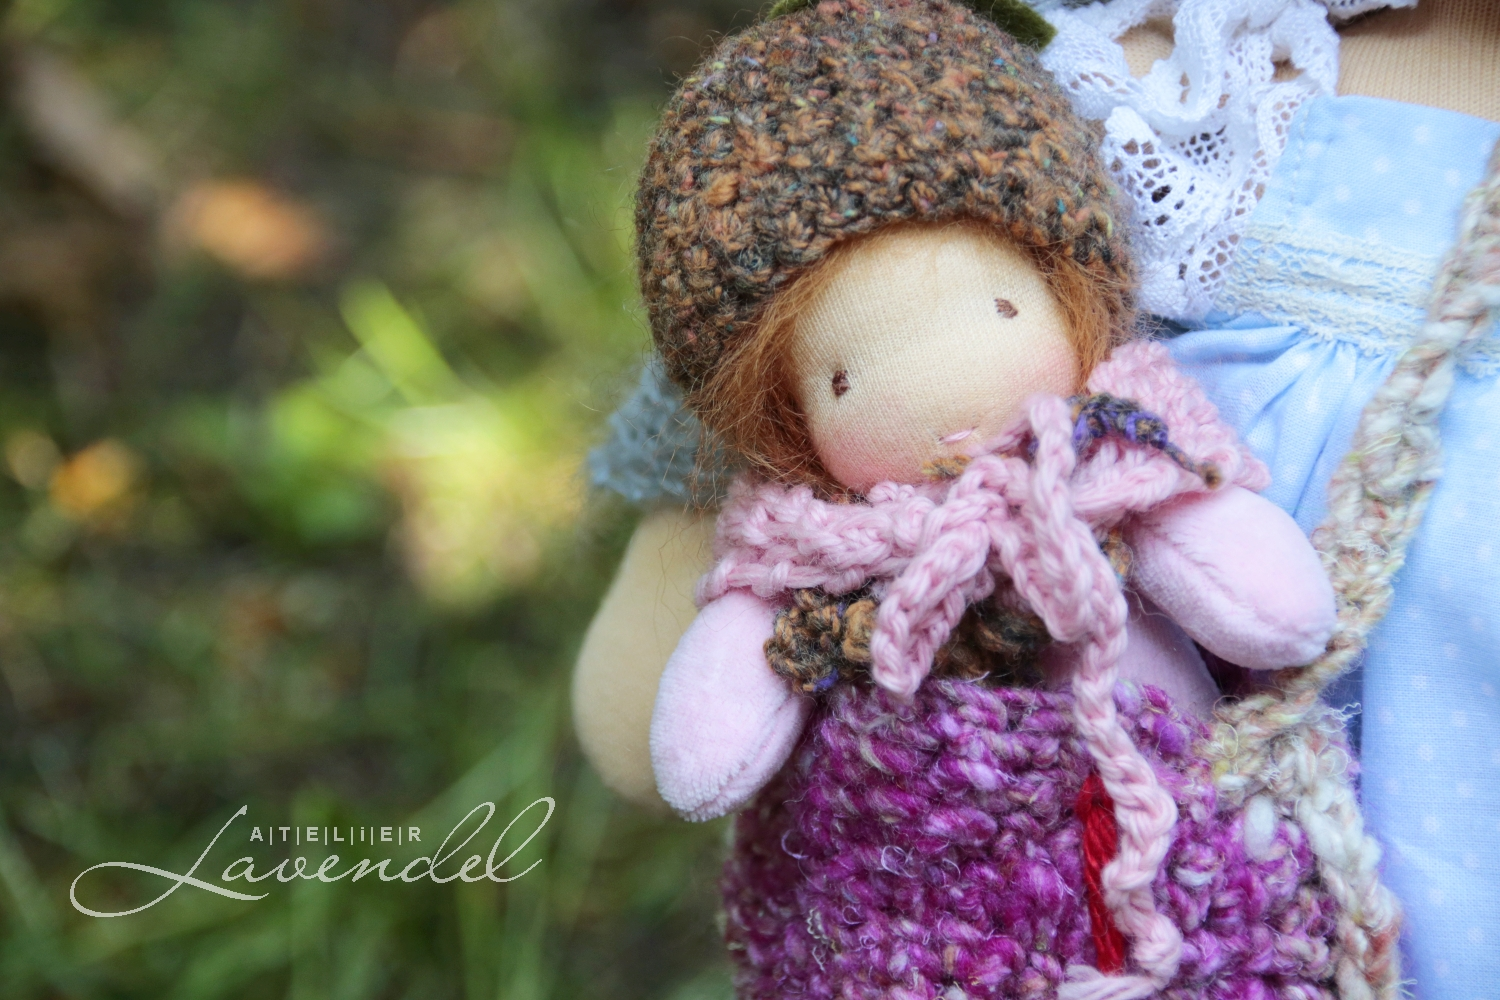 Natural fiber art doll ooak by Atelier Lavendel: meet Ariane and Luca. Organic, best quality materials, many sweet details, heirloom quality. Handmade in Germany